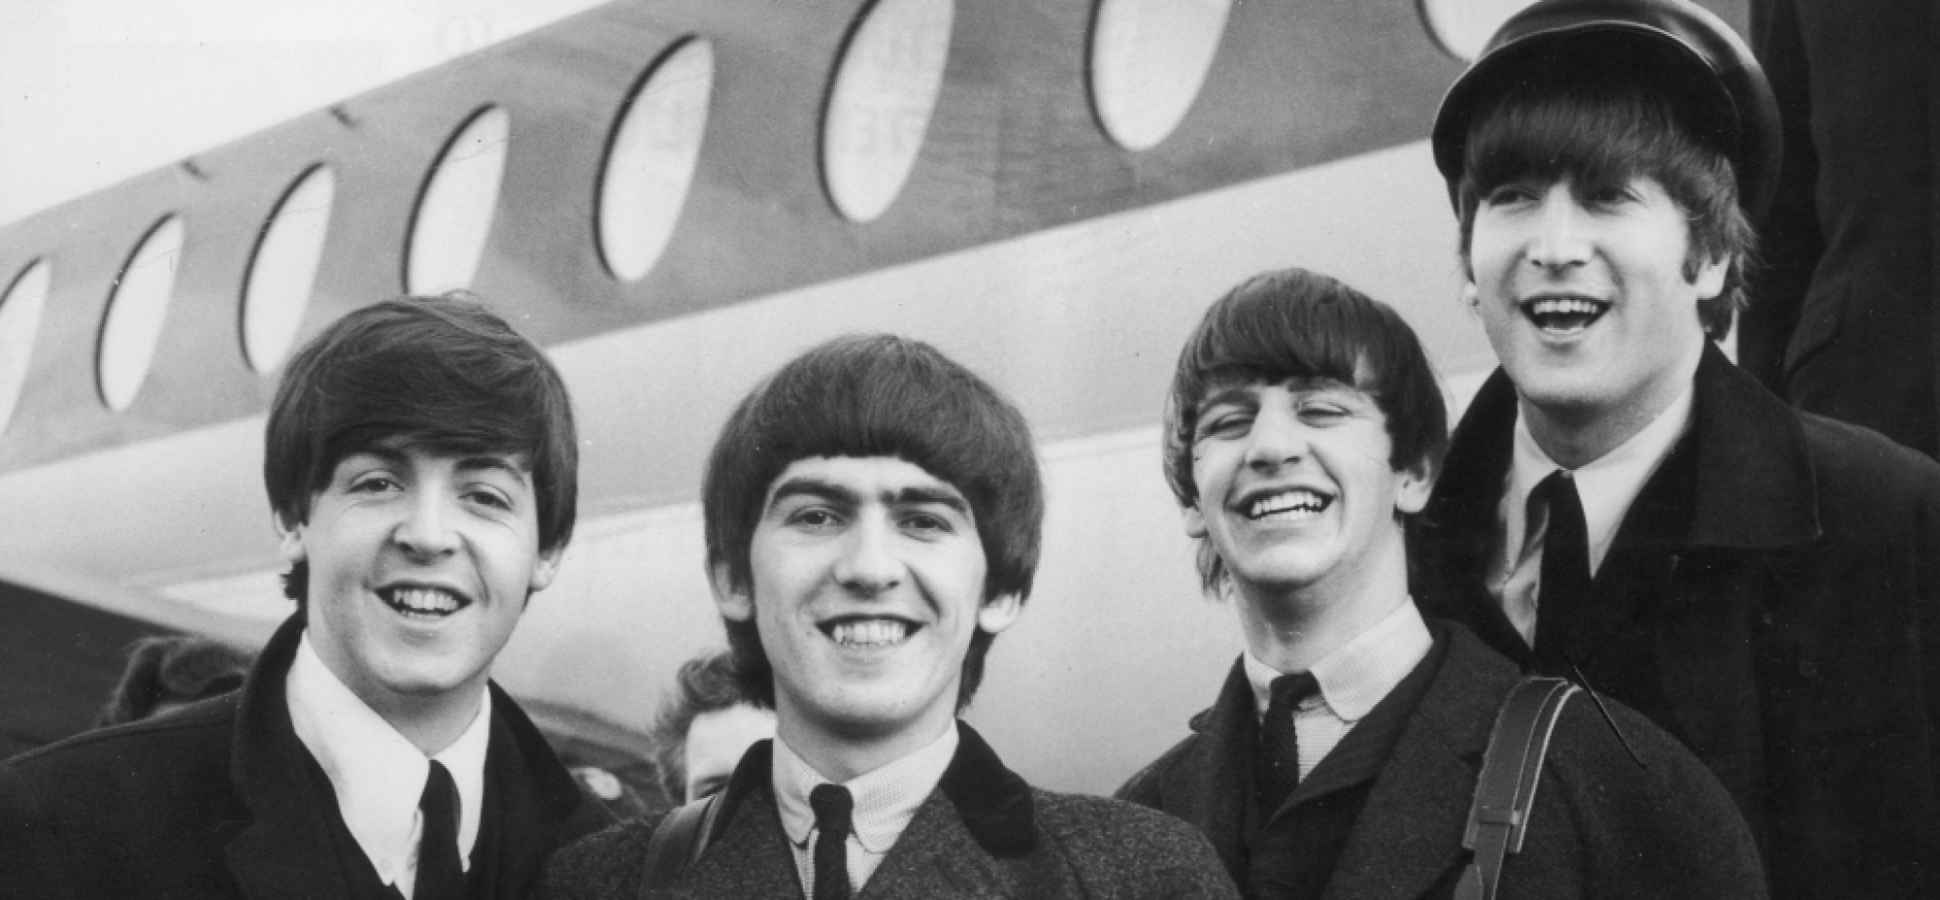 The Beatles Ignored Their (Surprisingly Harsh) Early Critics, and You Should Too